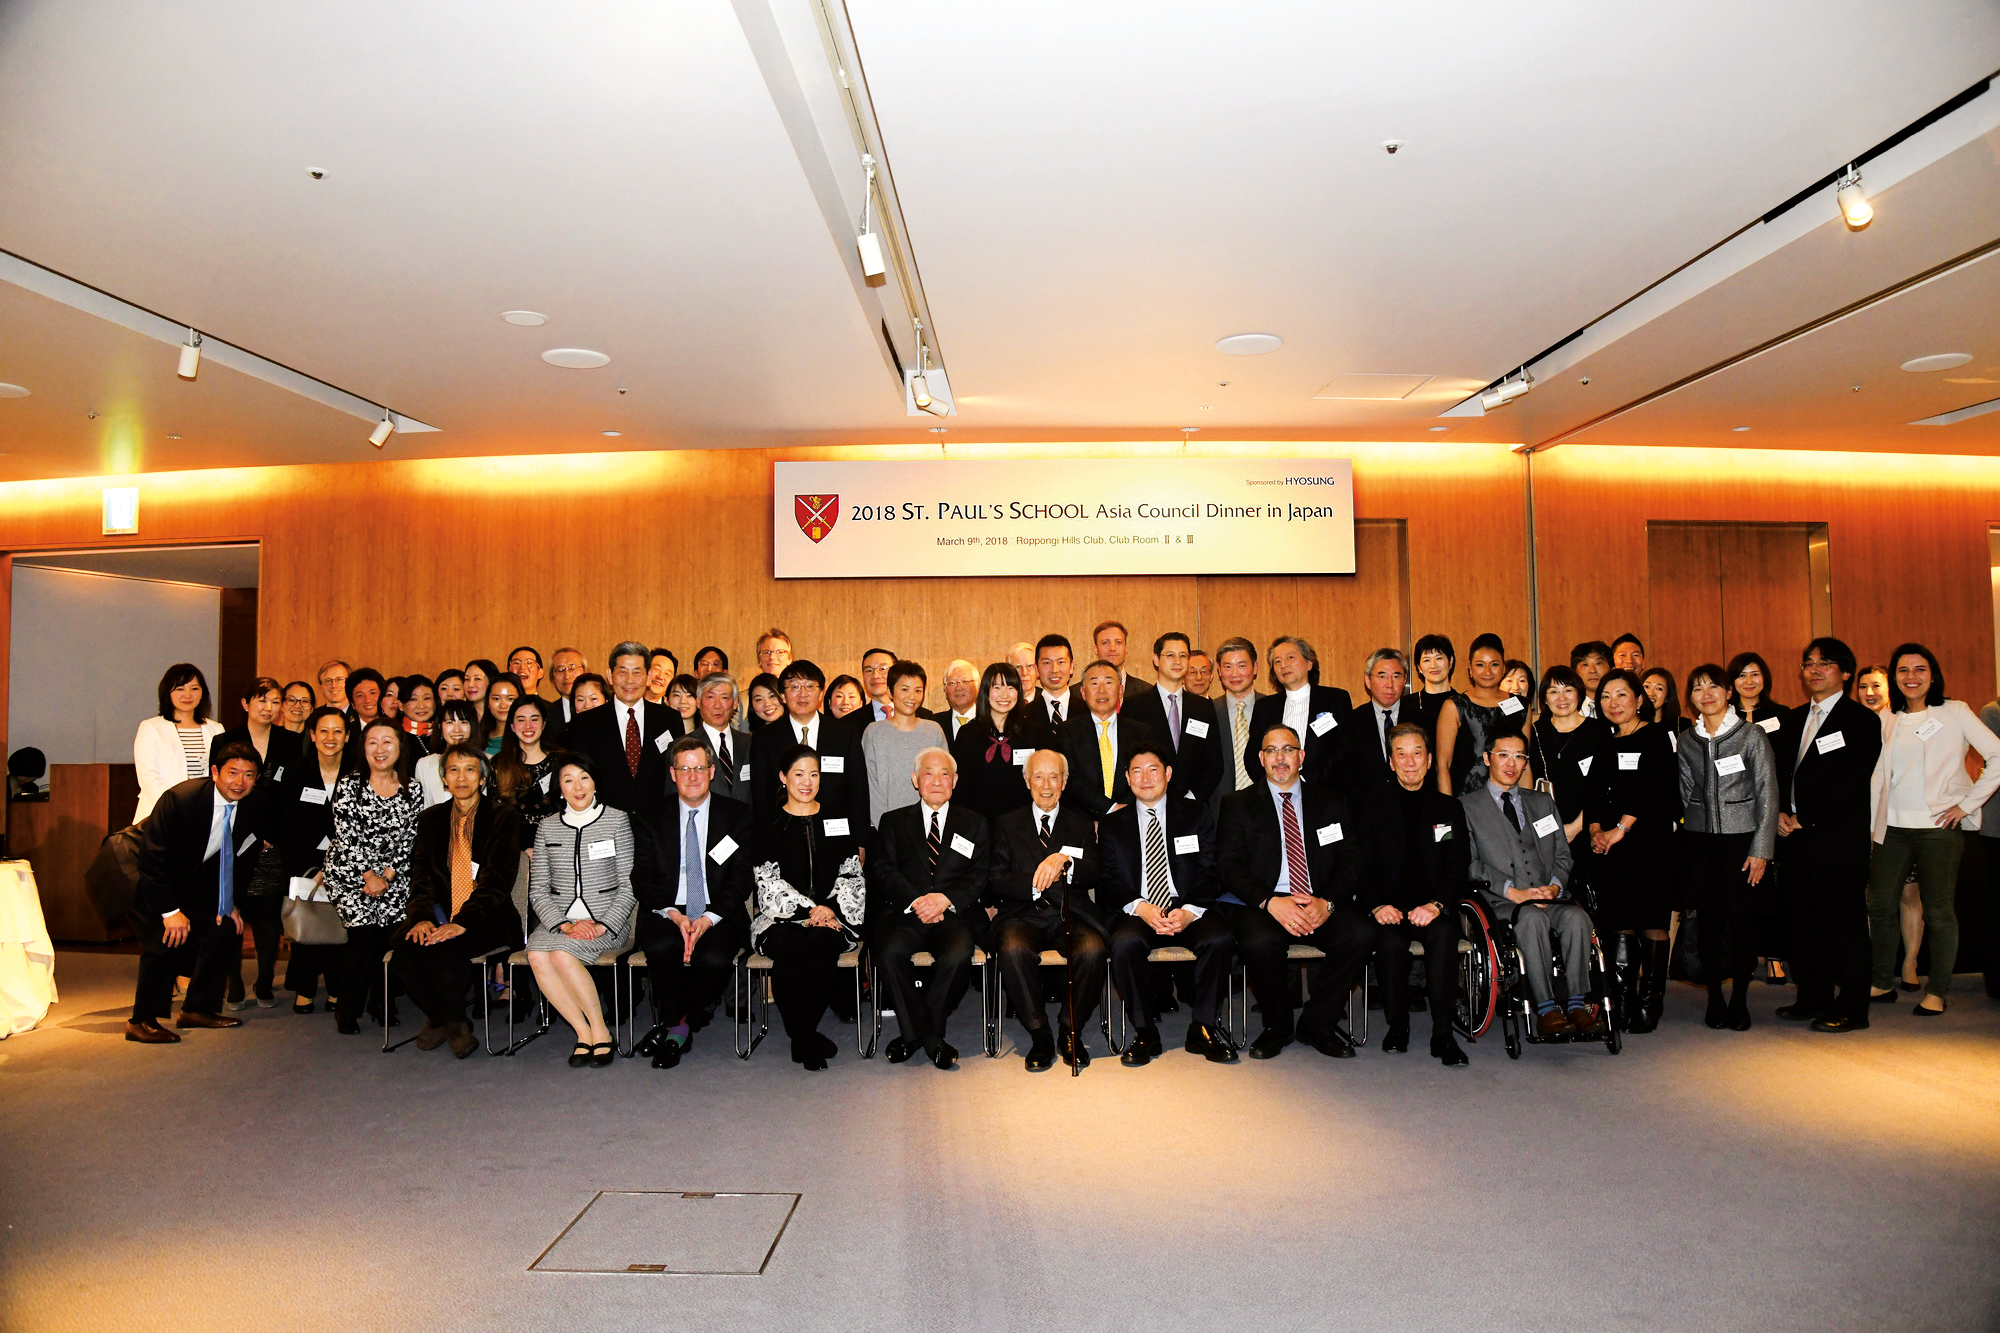 SPS alumni and parents gathered for the 2018 Asia Council dinner, hosted by Hyun-Joon Cho '87,on March 9, 2018, at the Roppongi Hills Club in Tokyo, Japan.